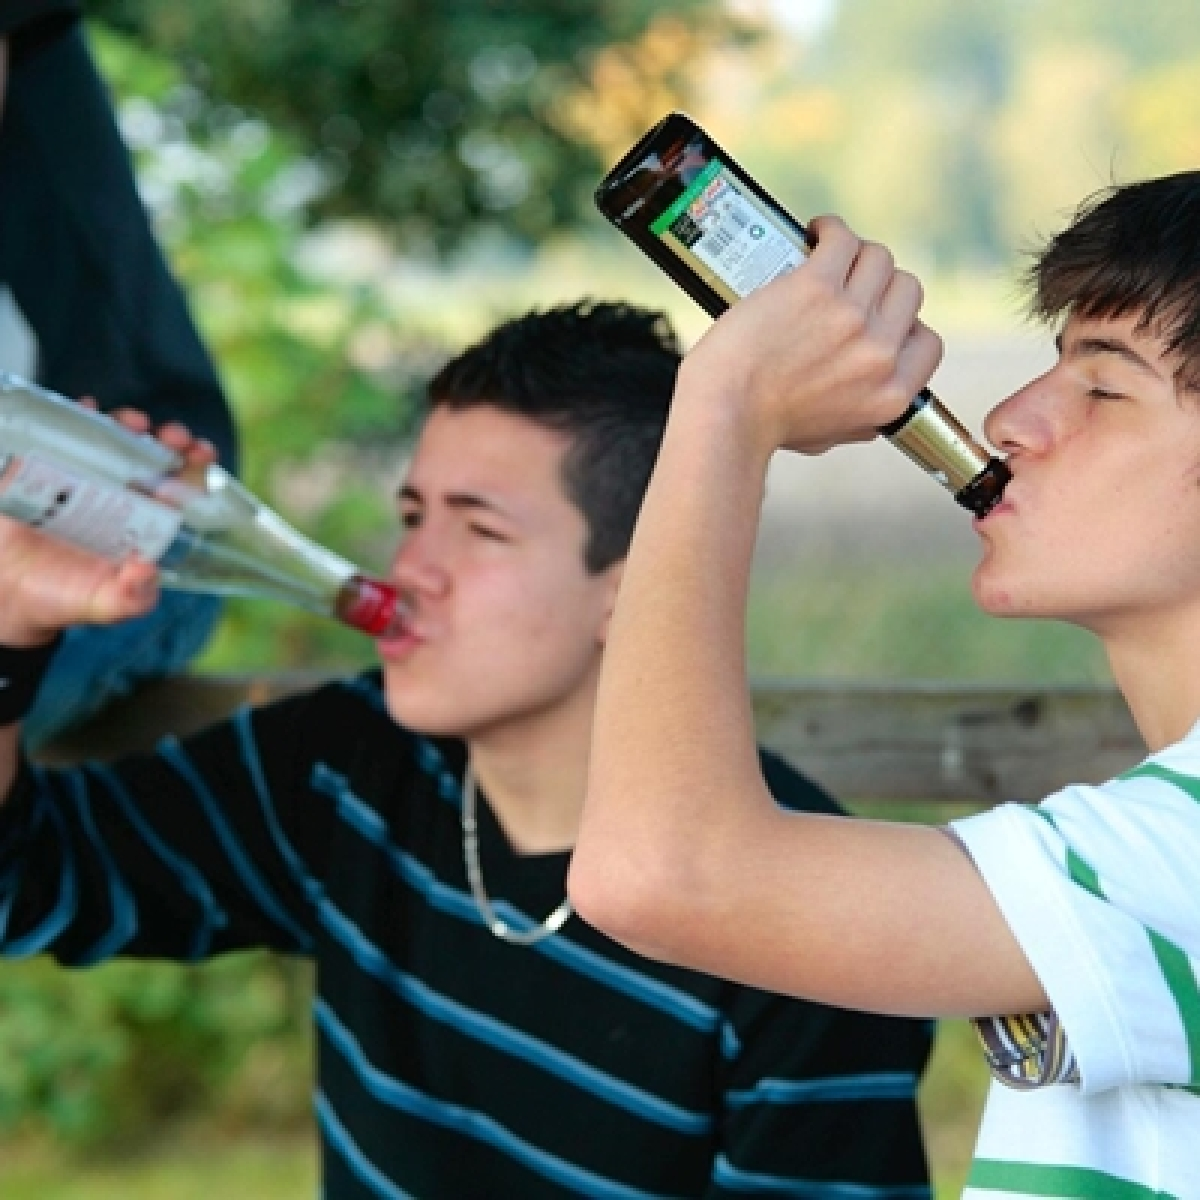 Is your adolescent hitting the bottle?